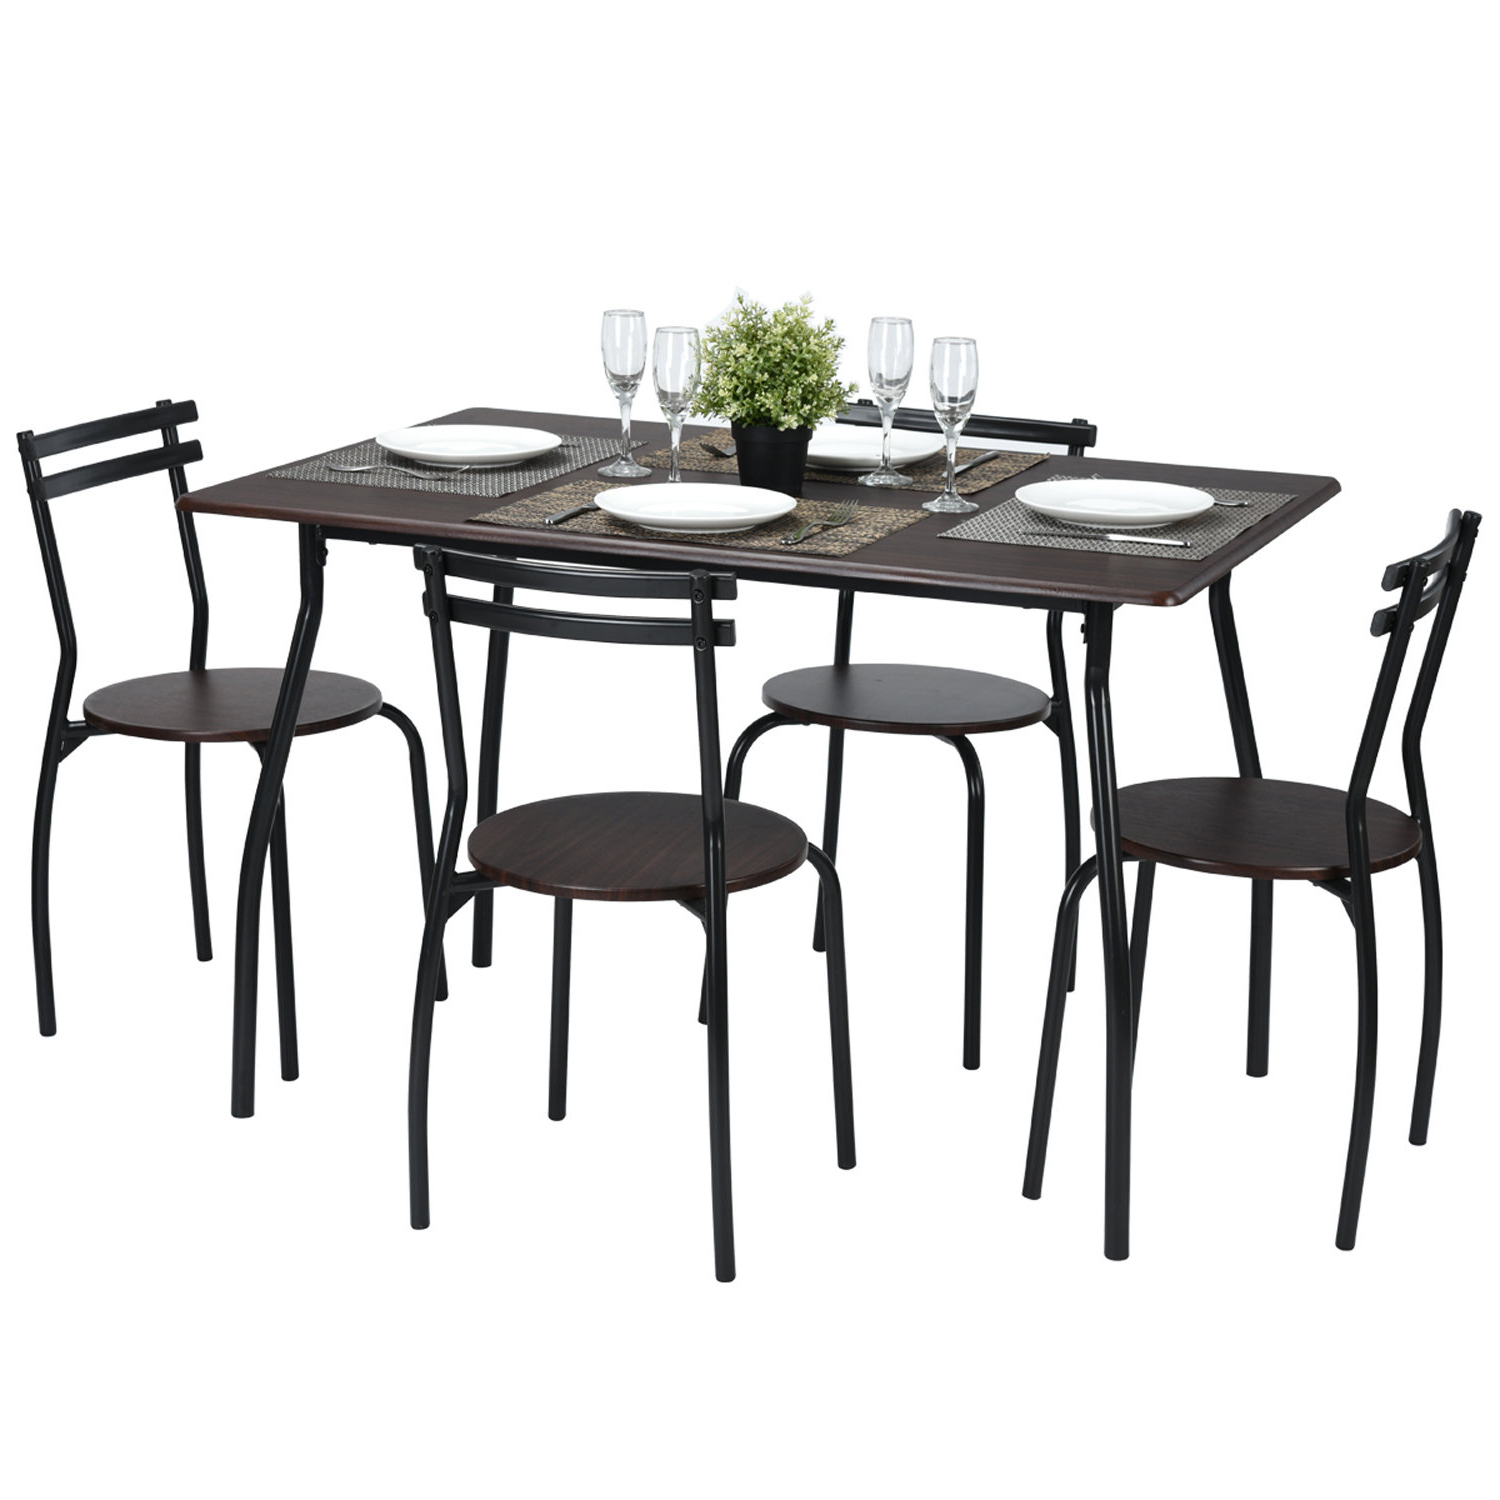 2020 Tarleton 5 Piece Dining Sets Regarding Ebern Designs Tarleton 5 Piece Dining Set (View 2 of 25)